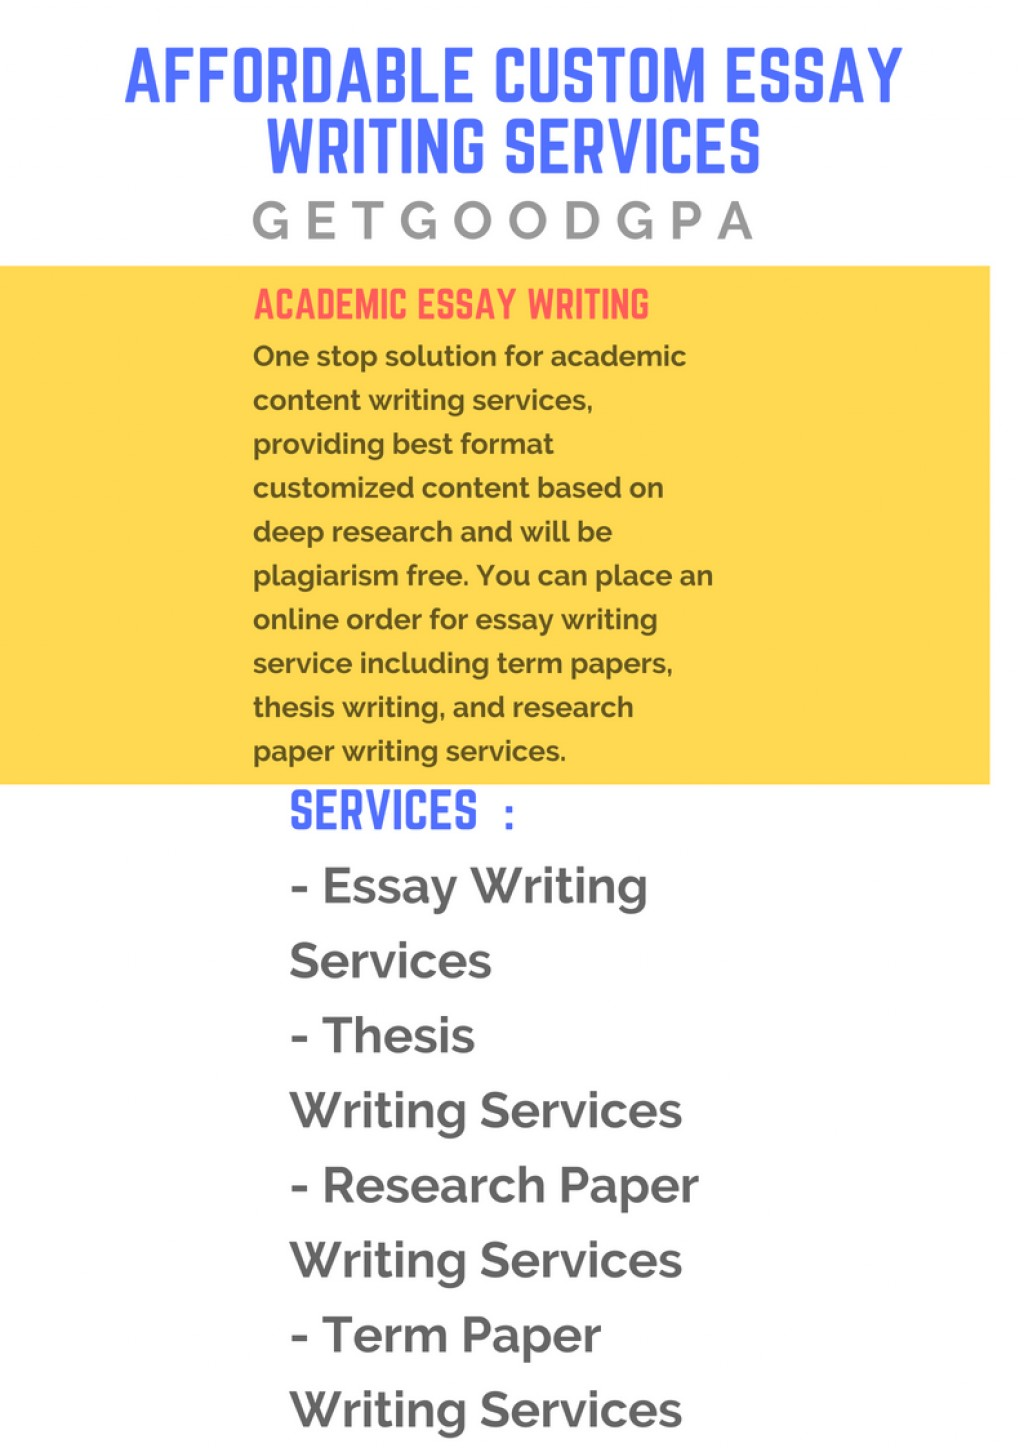 002 Research Paper Writing Services Archaicawful In Pakistan Mumbai Service Online Large